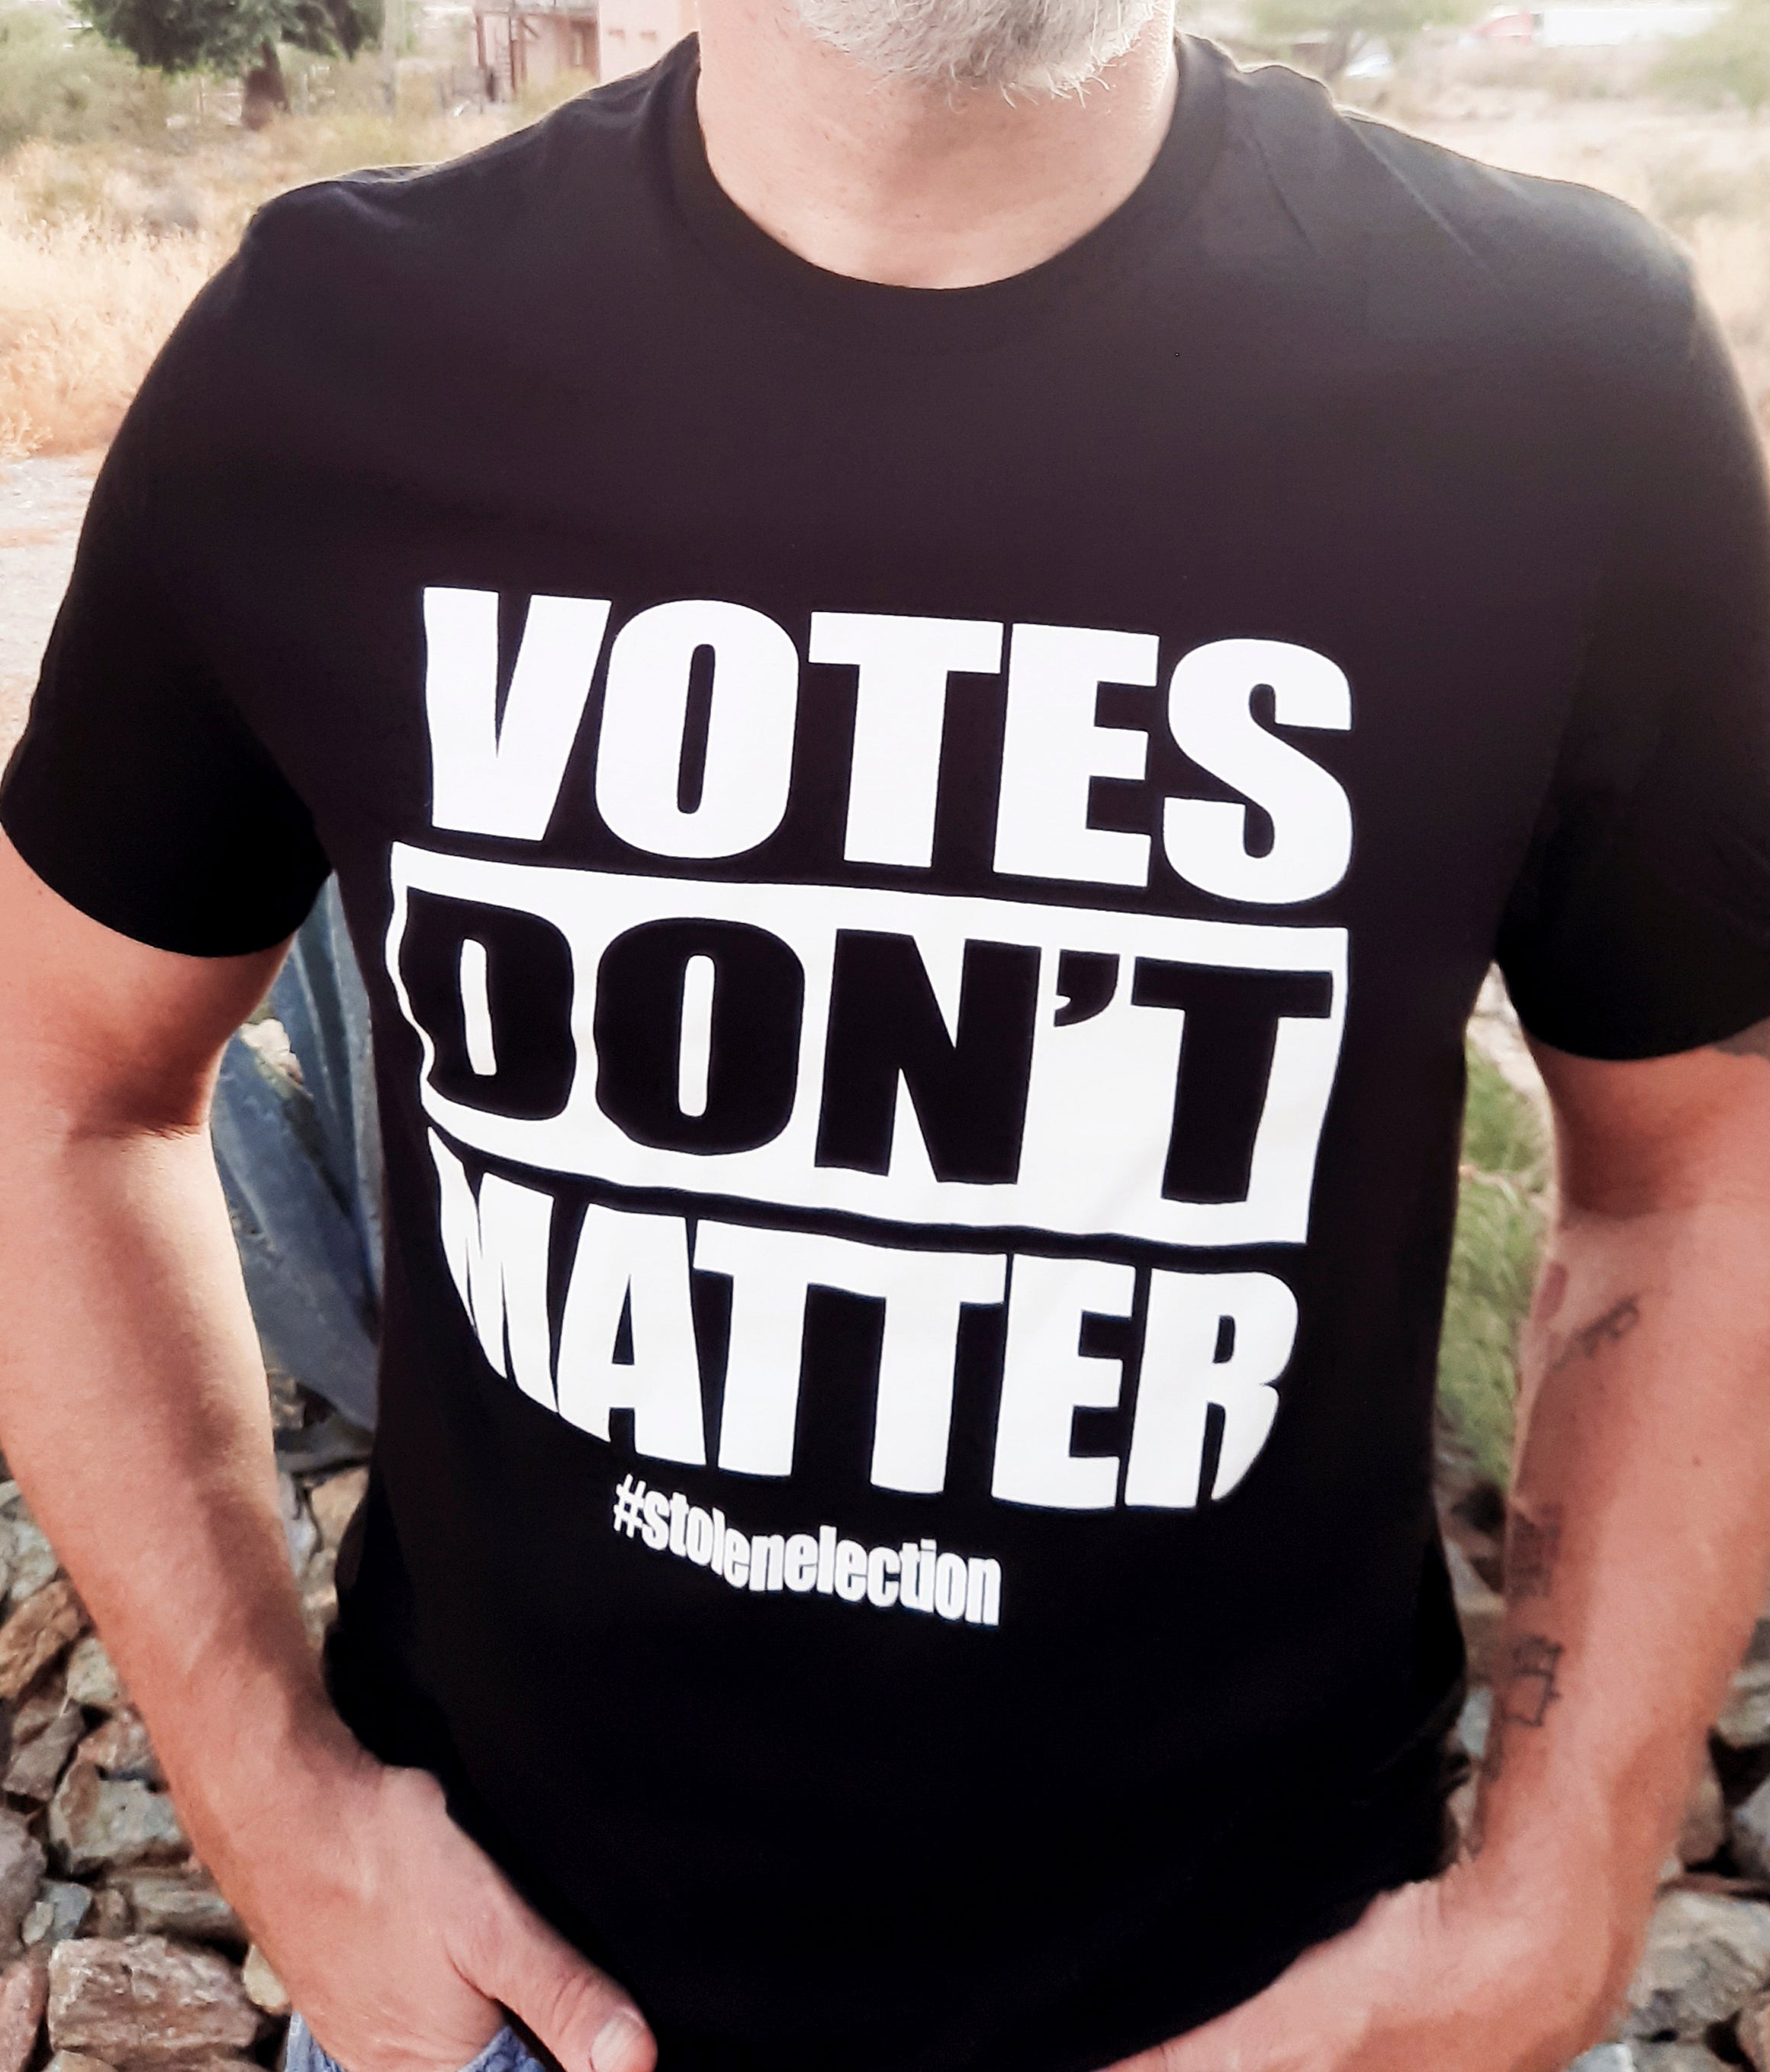 Votes dont matter t-shirt on model